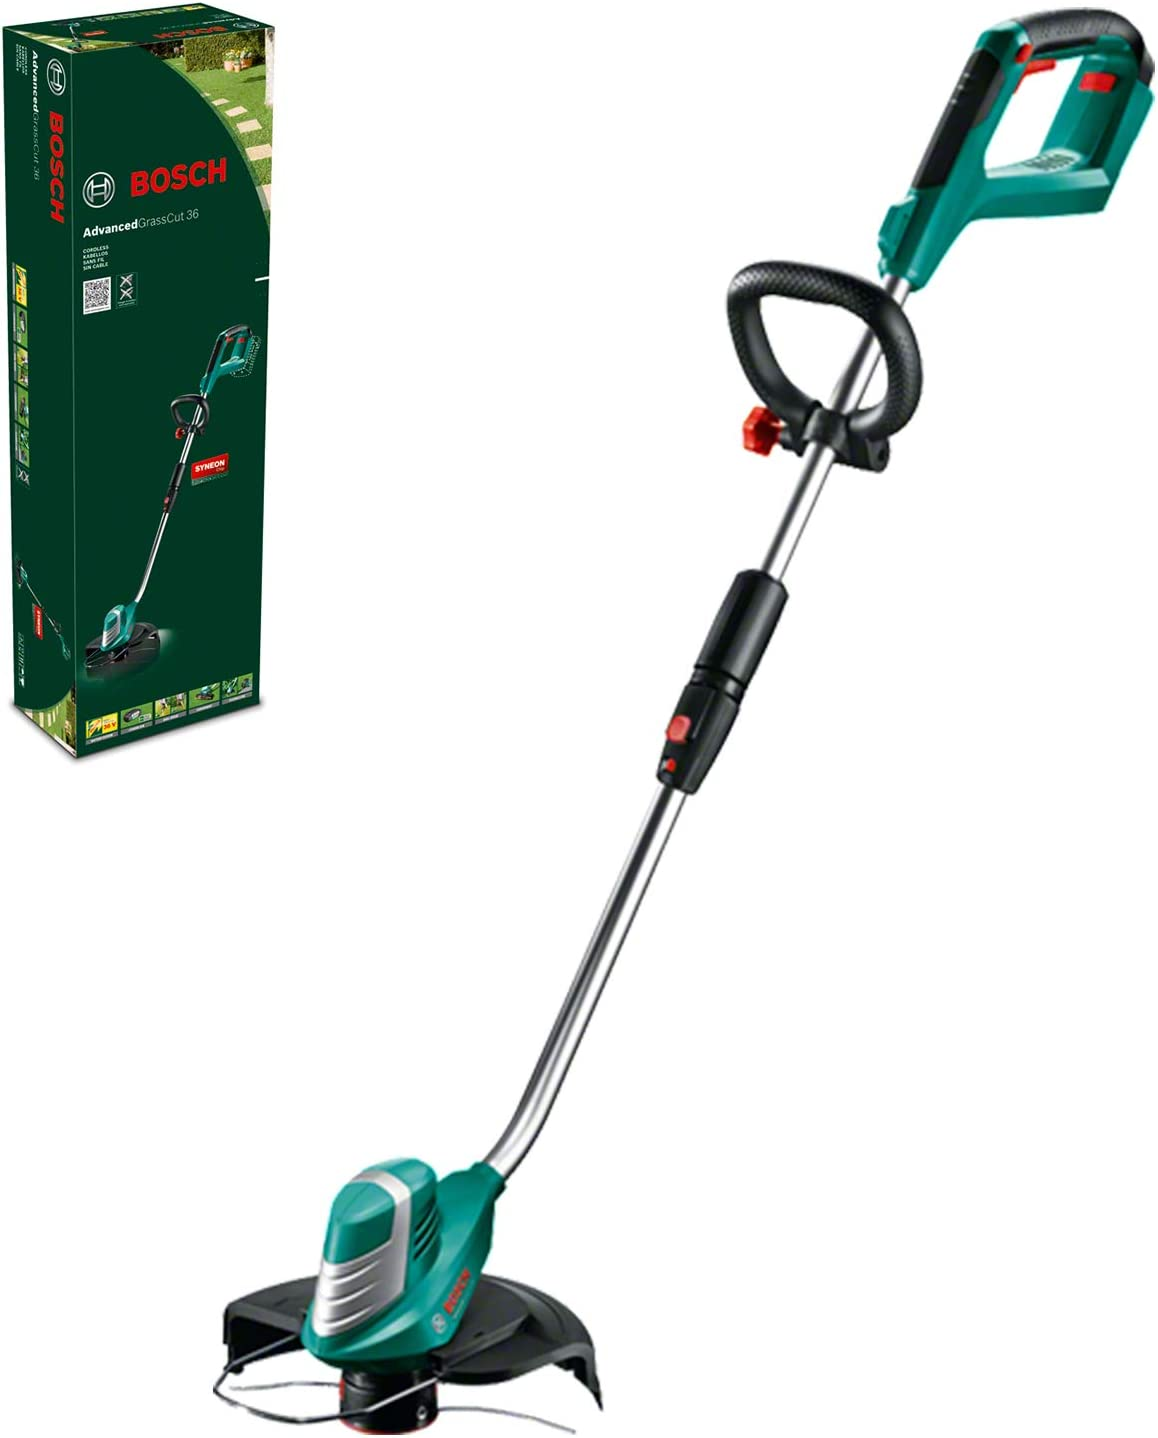 Bosch Home and Garden 0600878N04 Cortacésped, 36 V, negro/verde